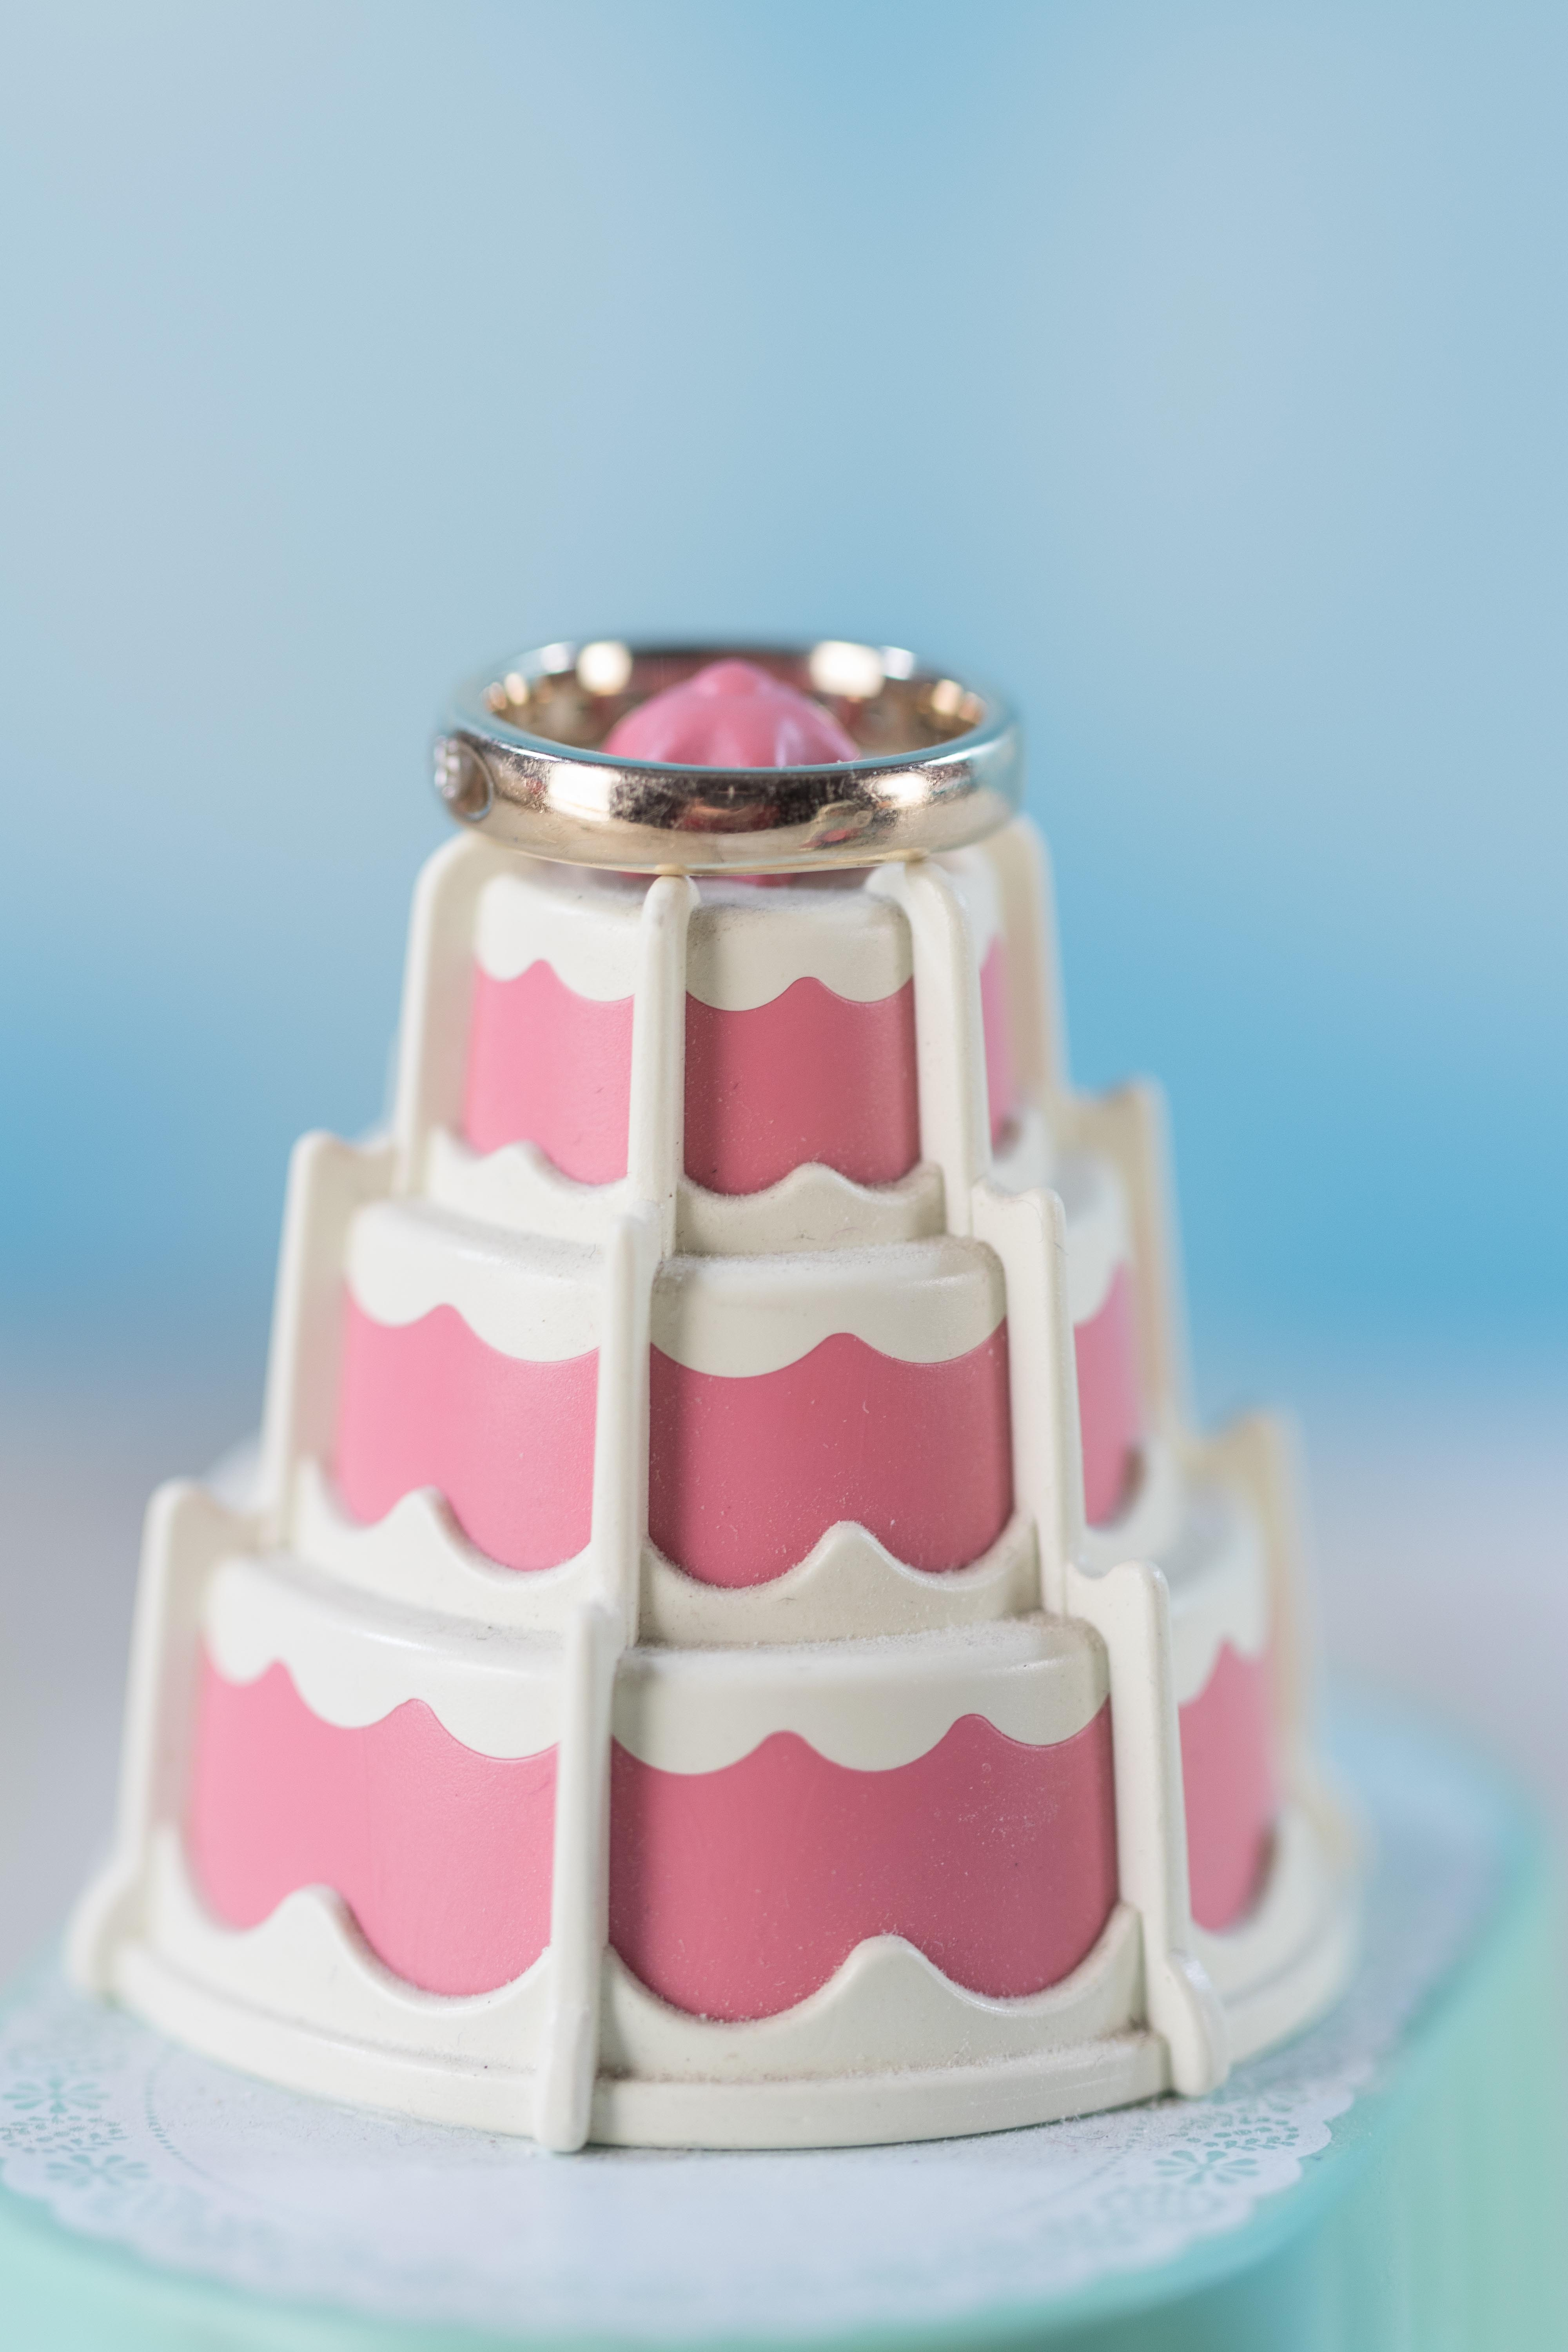 Playmobile Wedding Ring Reflection | https://www.roseclearfield.com